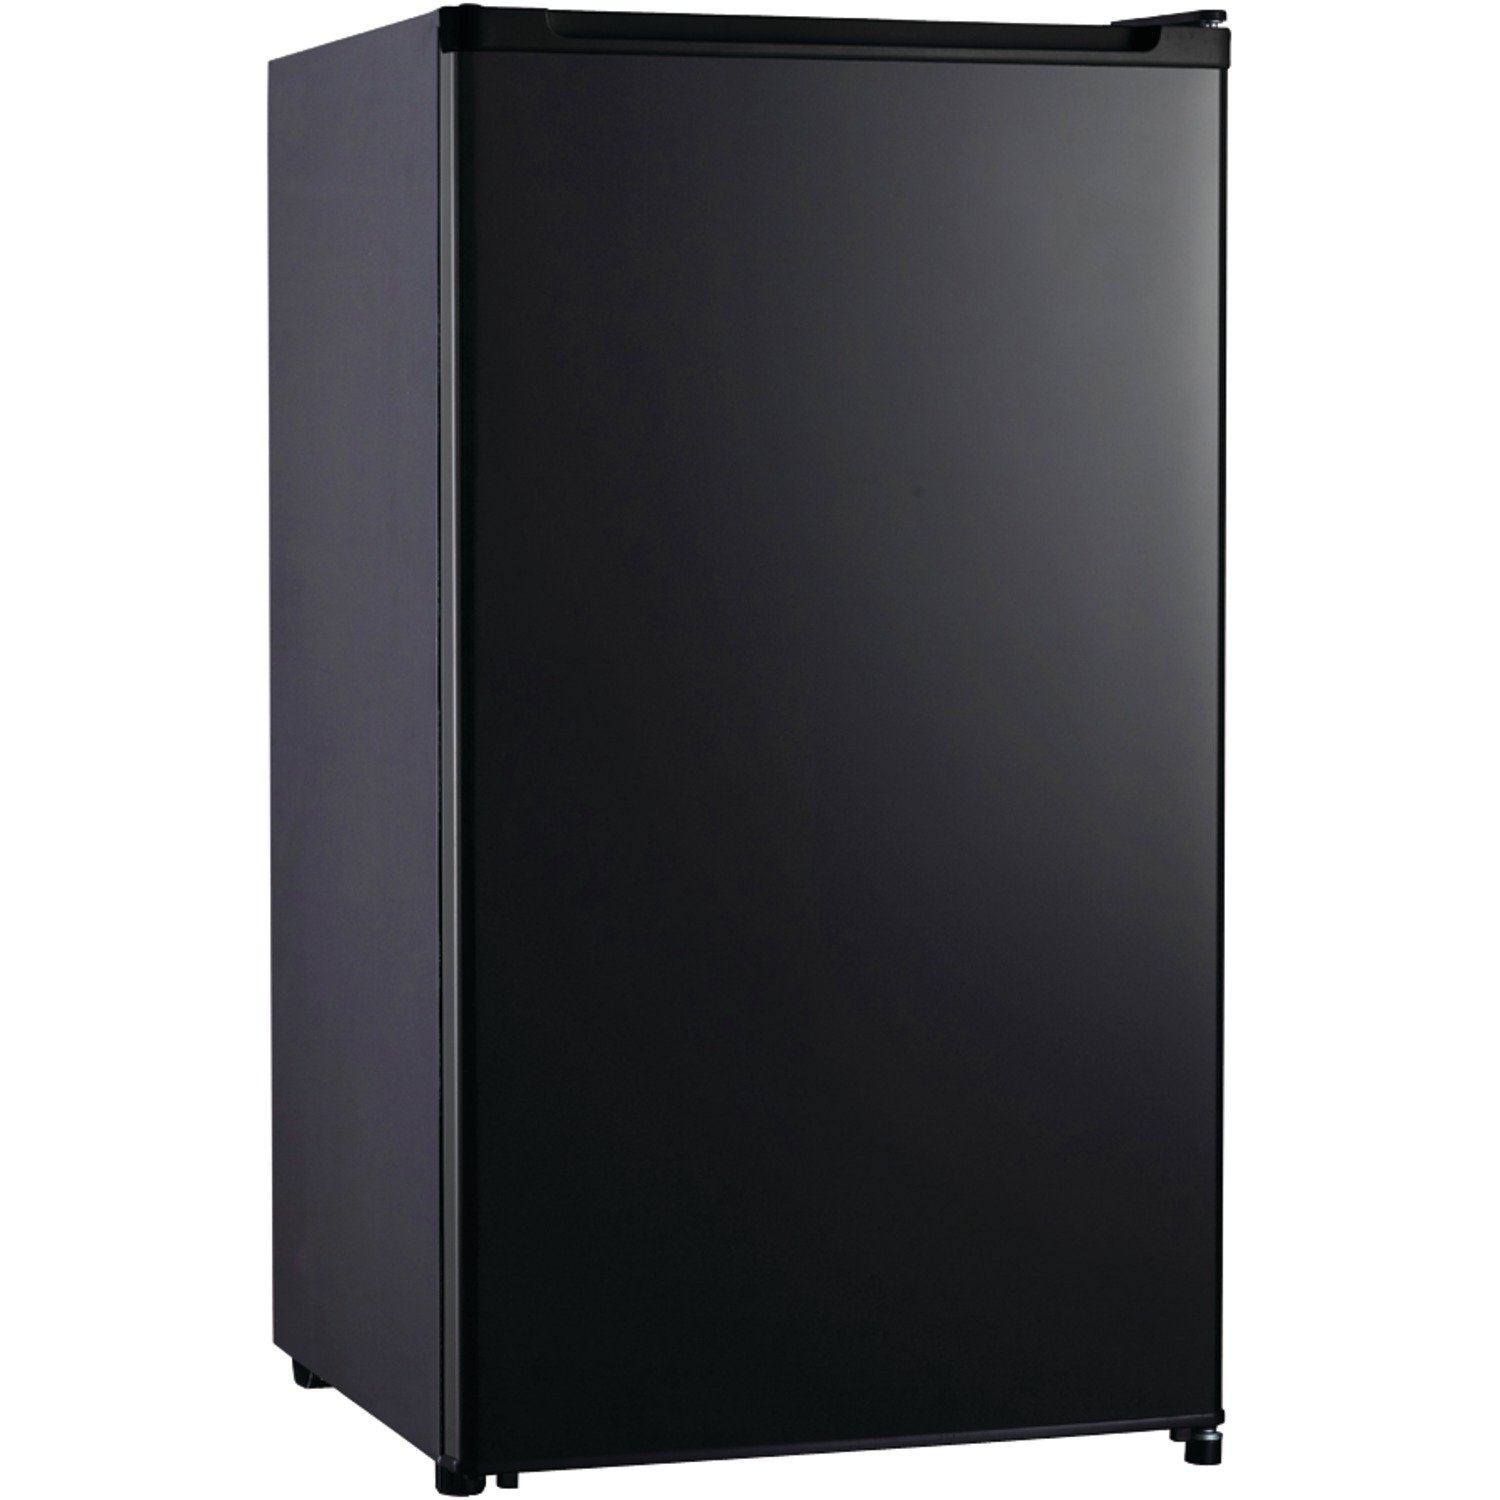 Magic Chef MCAR320B2 All Refrigerator 3.2 cu.ft Black